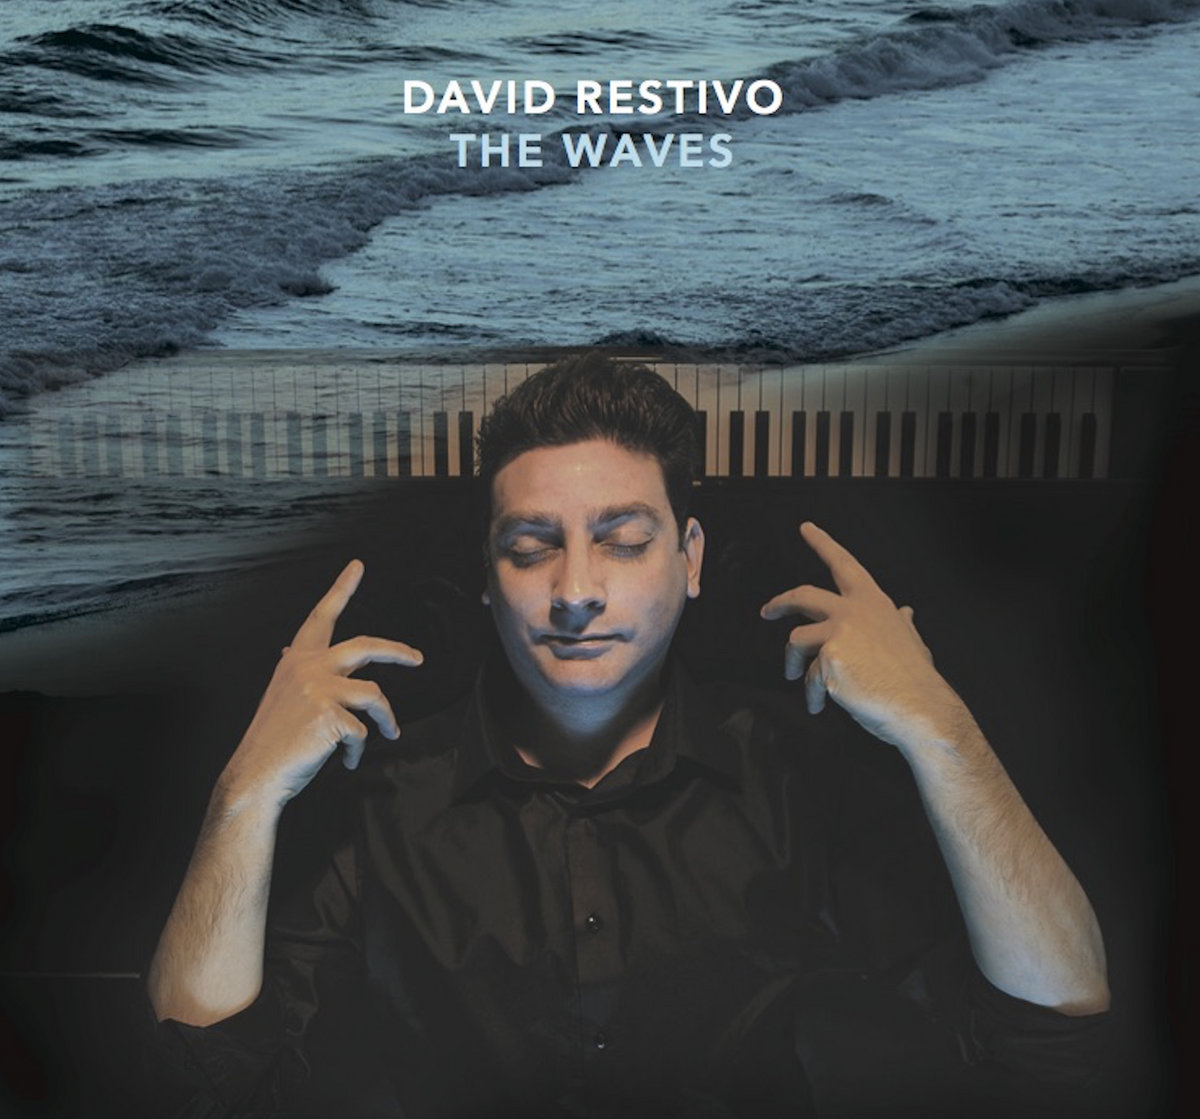 David Restivo - The Waves (2016)